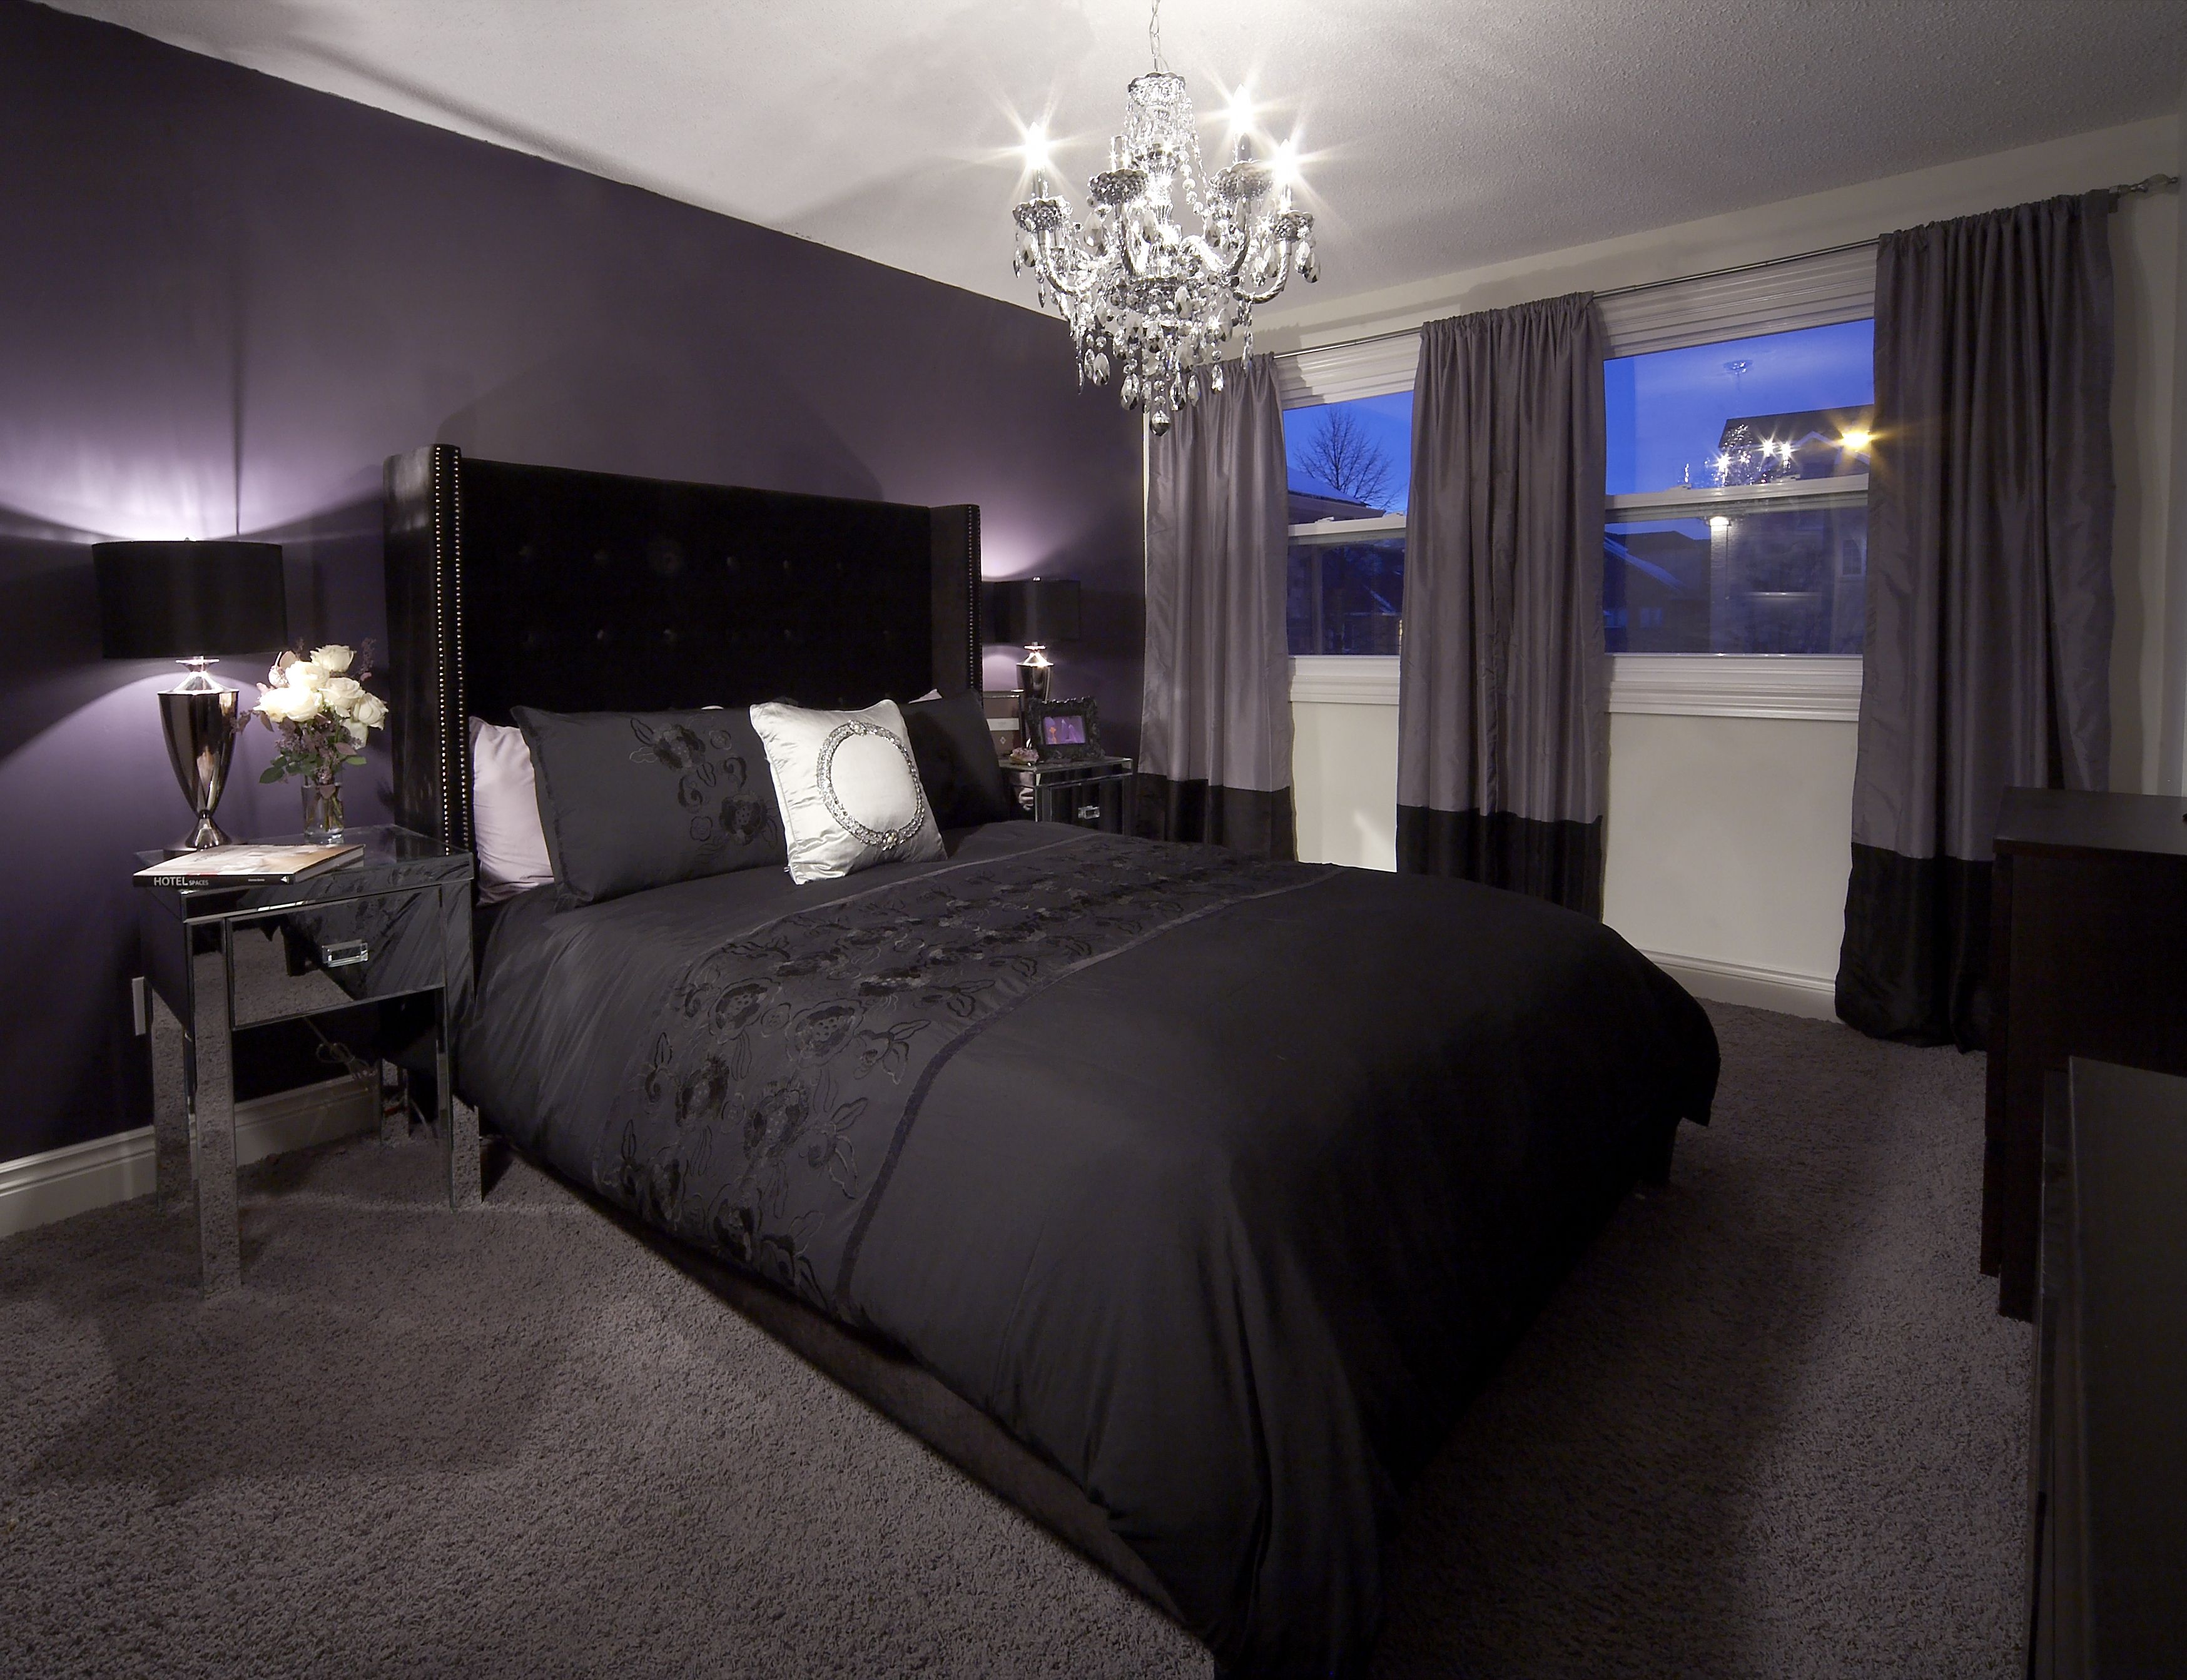 Delightful Purple Grey Black Bedroom Ideas Part - 11: Bedroom With Purple Feature Wall And Drapery, Crystal Chandelier And Black  Bedspread - LUX Design